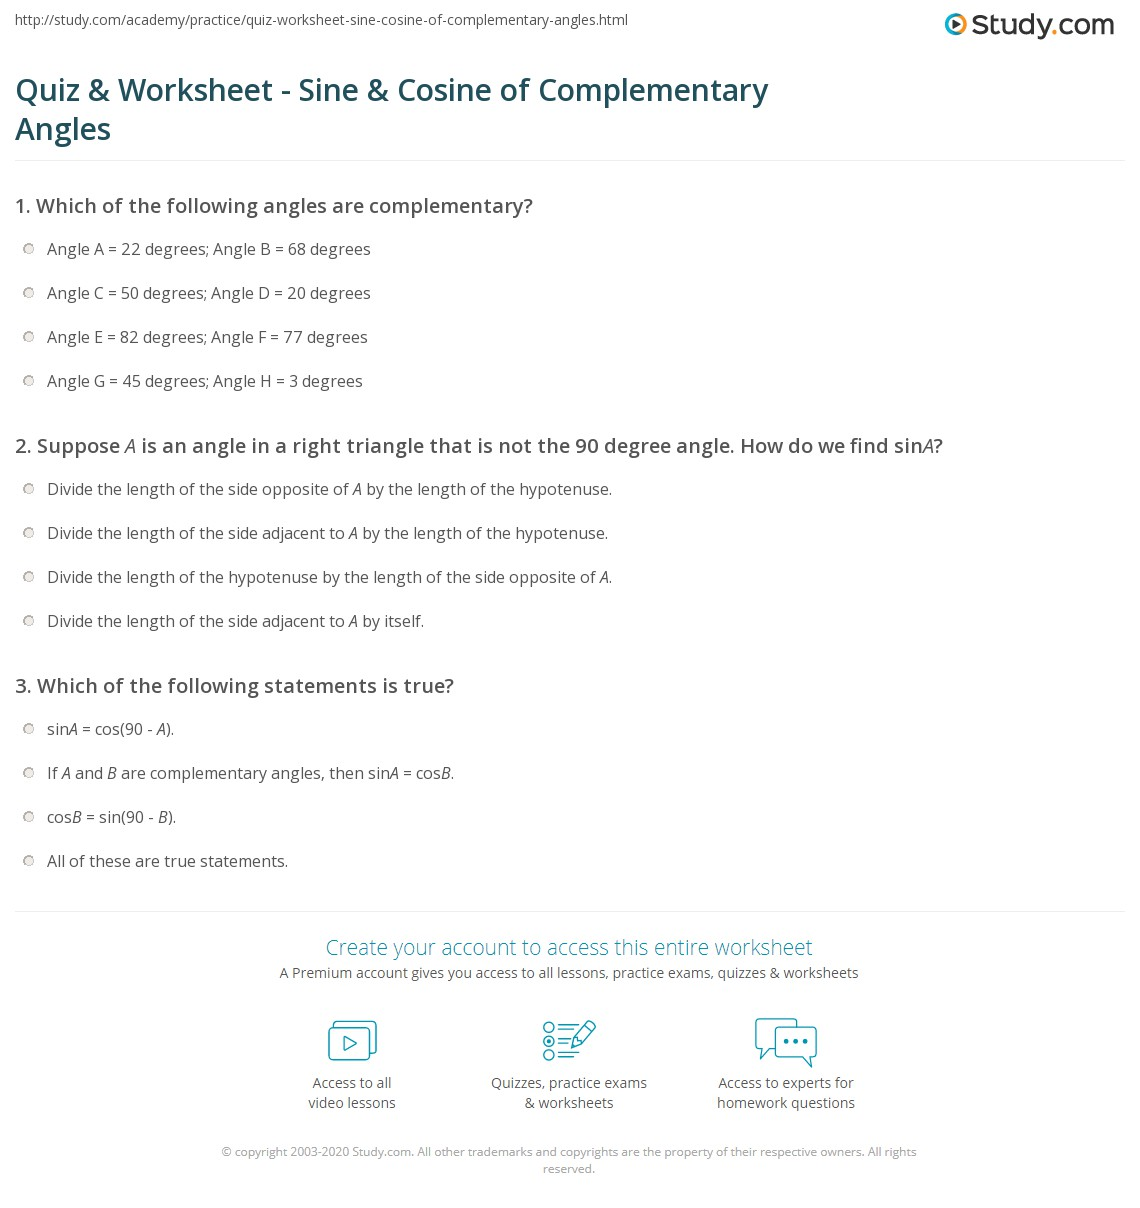 Quiz & Worksheet - Sine & Cosine of Complementary Angles | Study.com